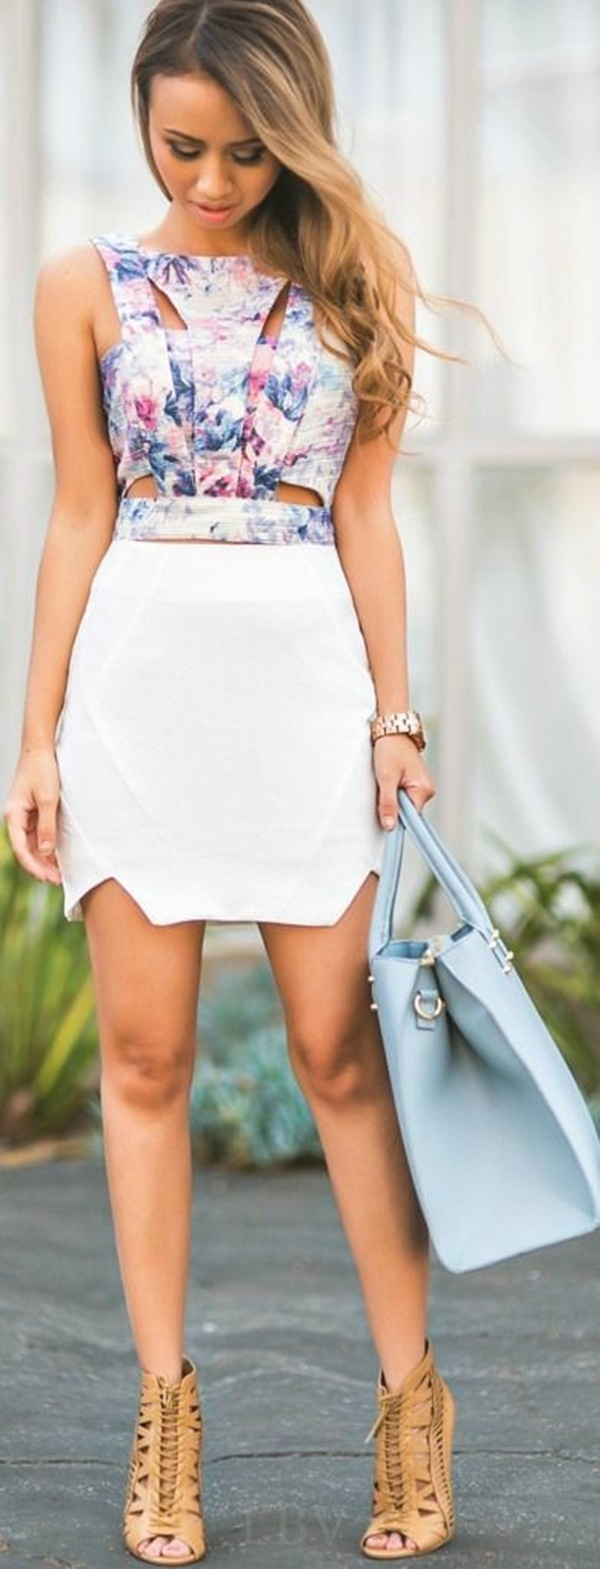 Sexy Tight Short Dresses for Girls36-Multi Color Top and White Skirt